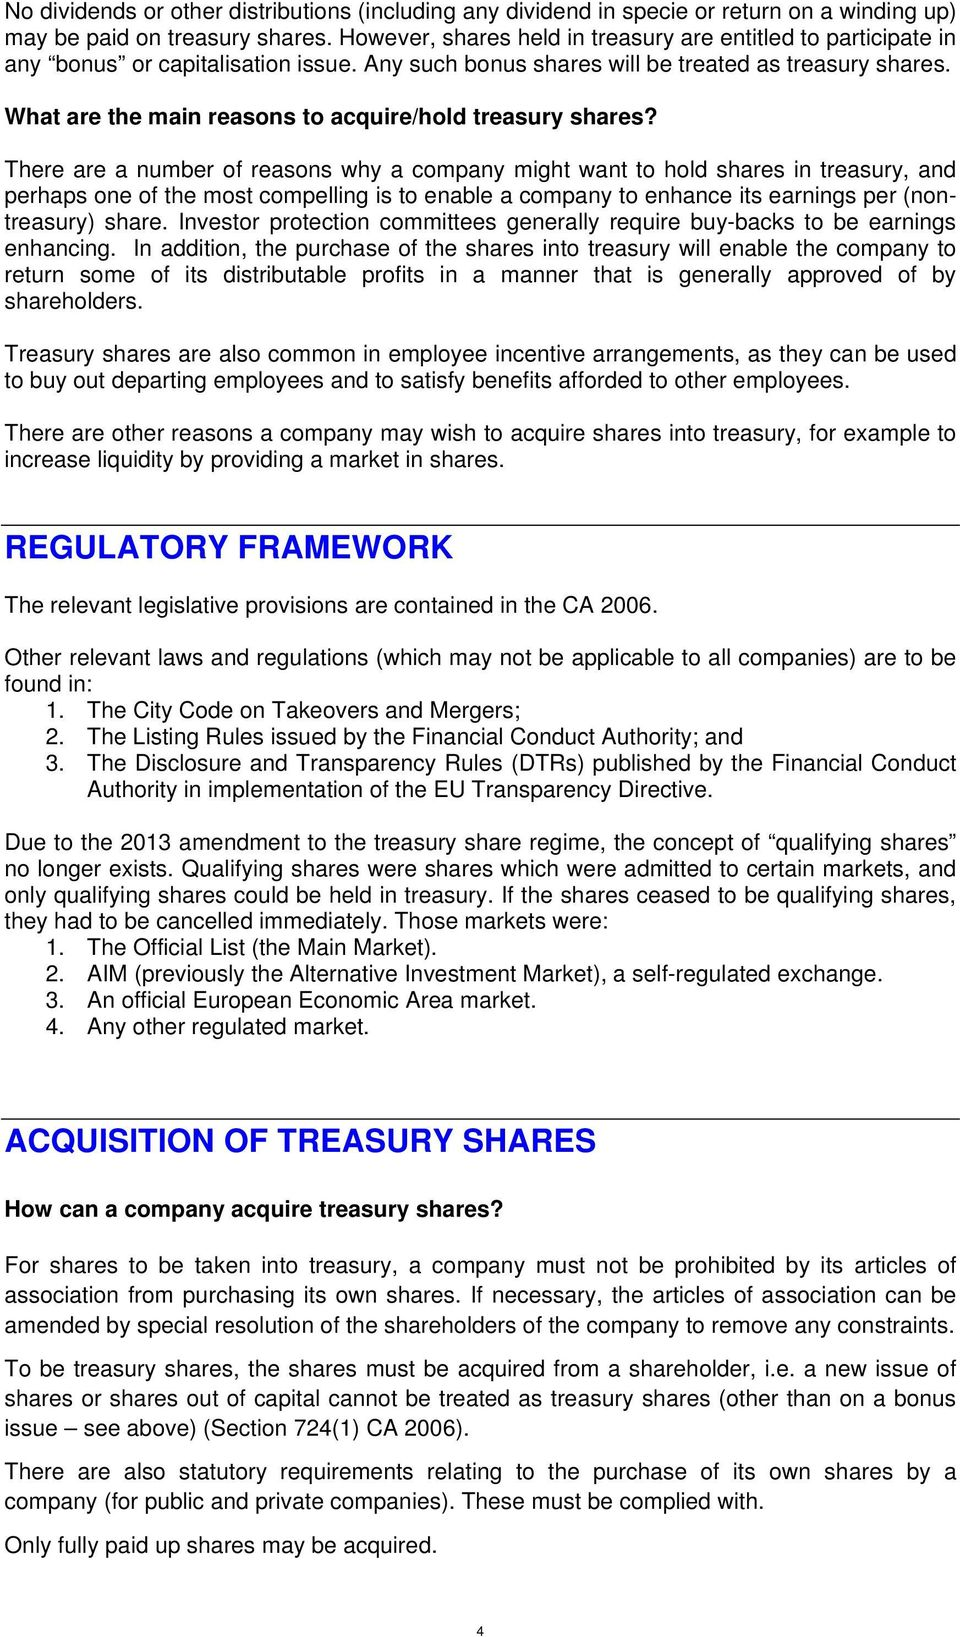 What are the main reasons to acquire/hold treasury shares?